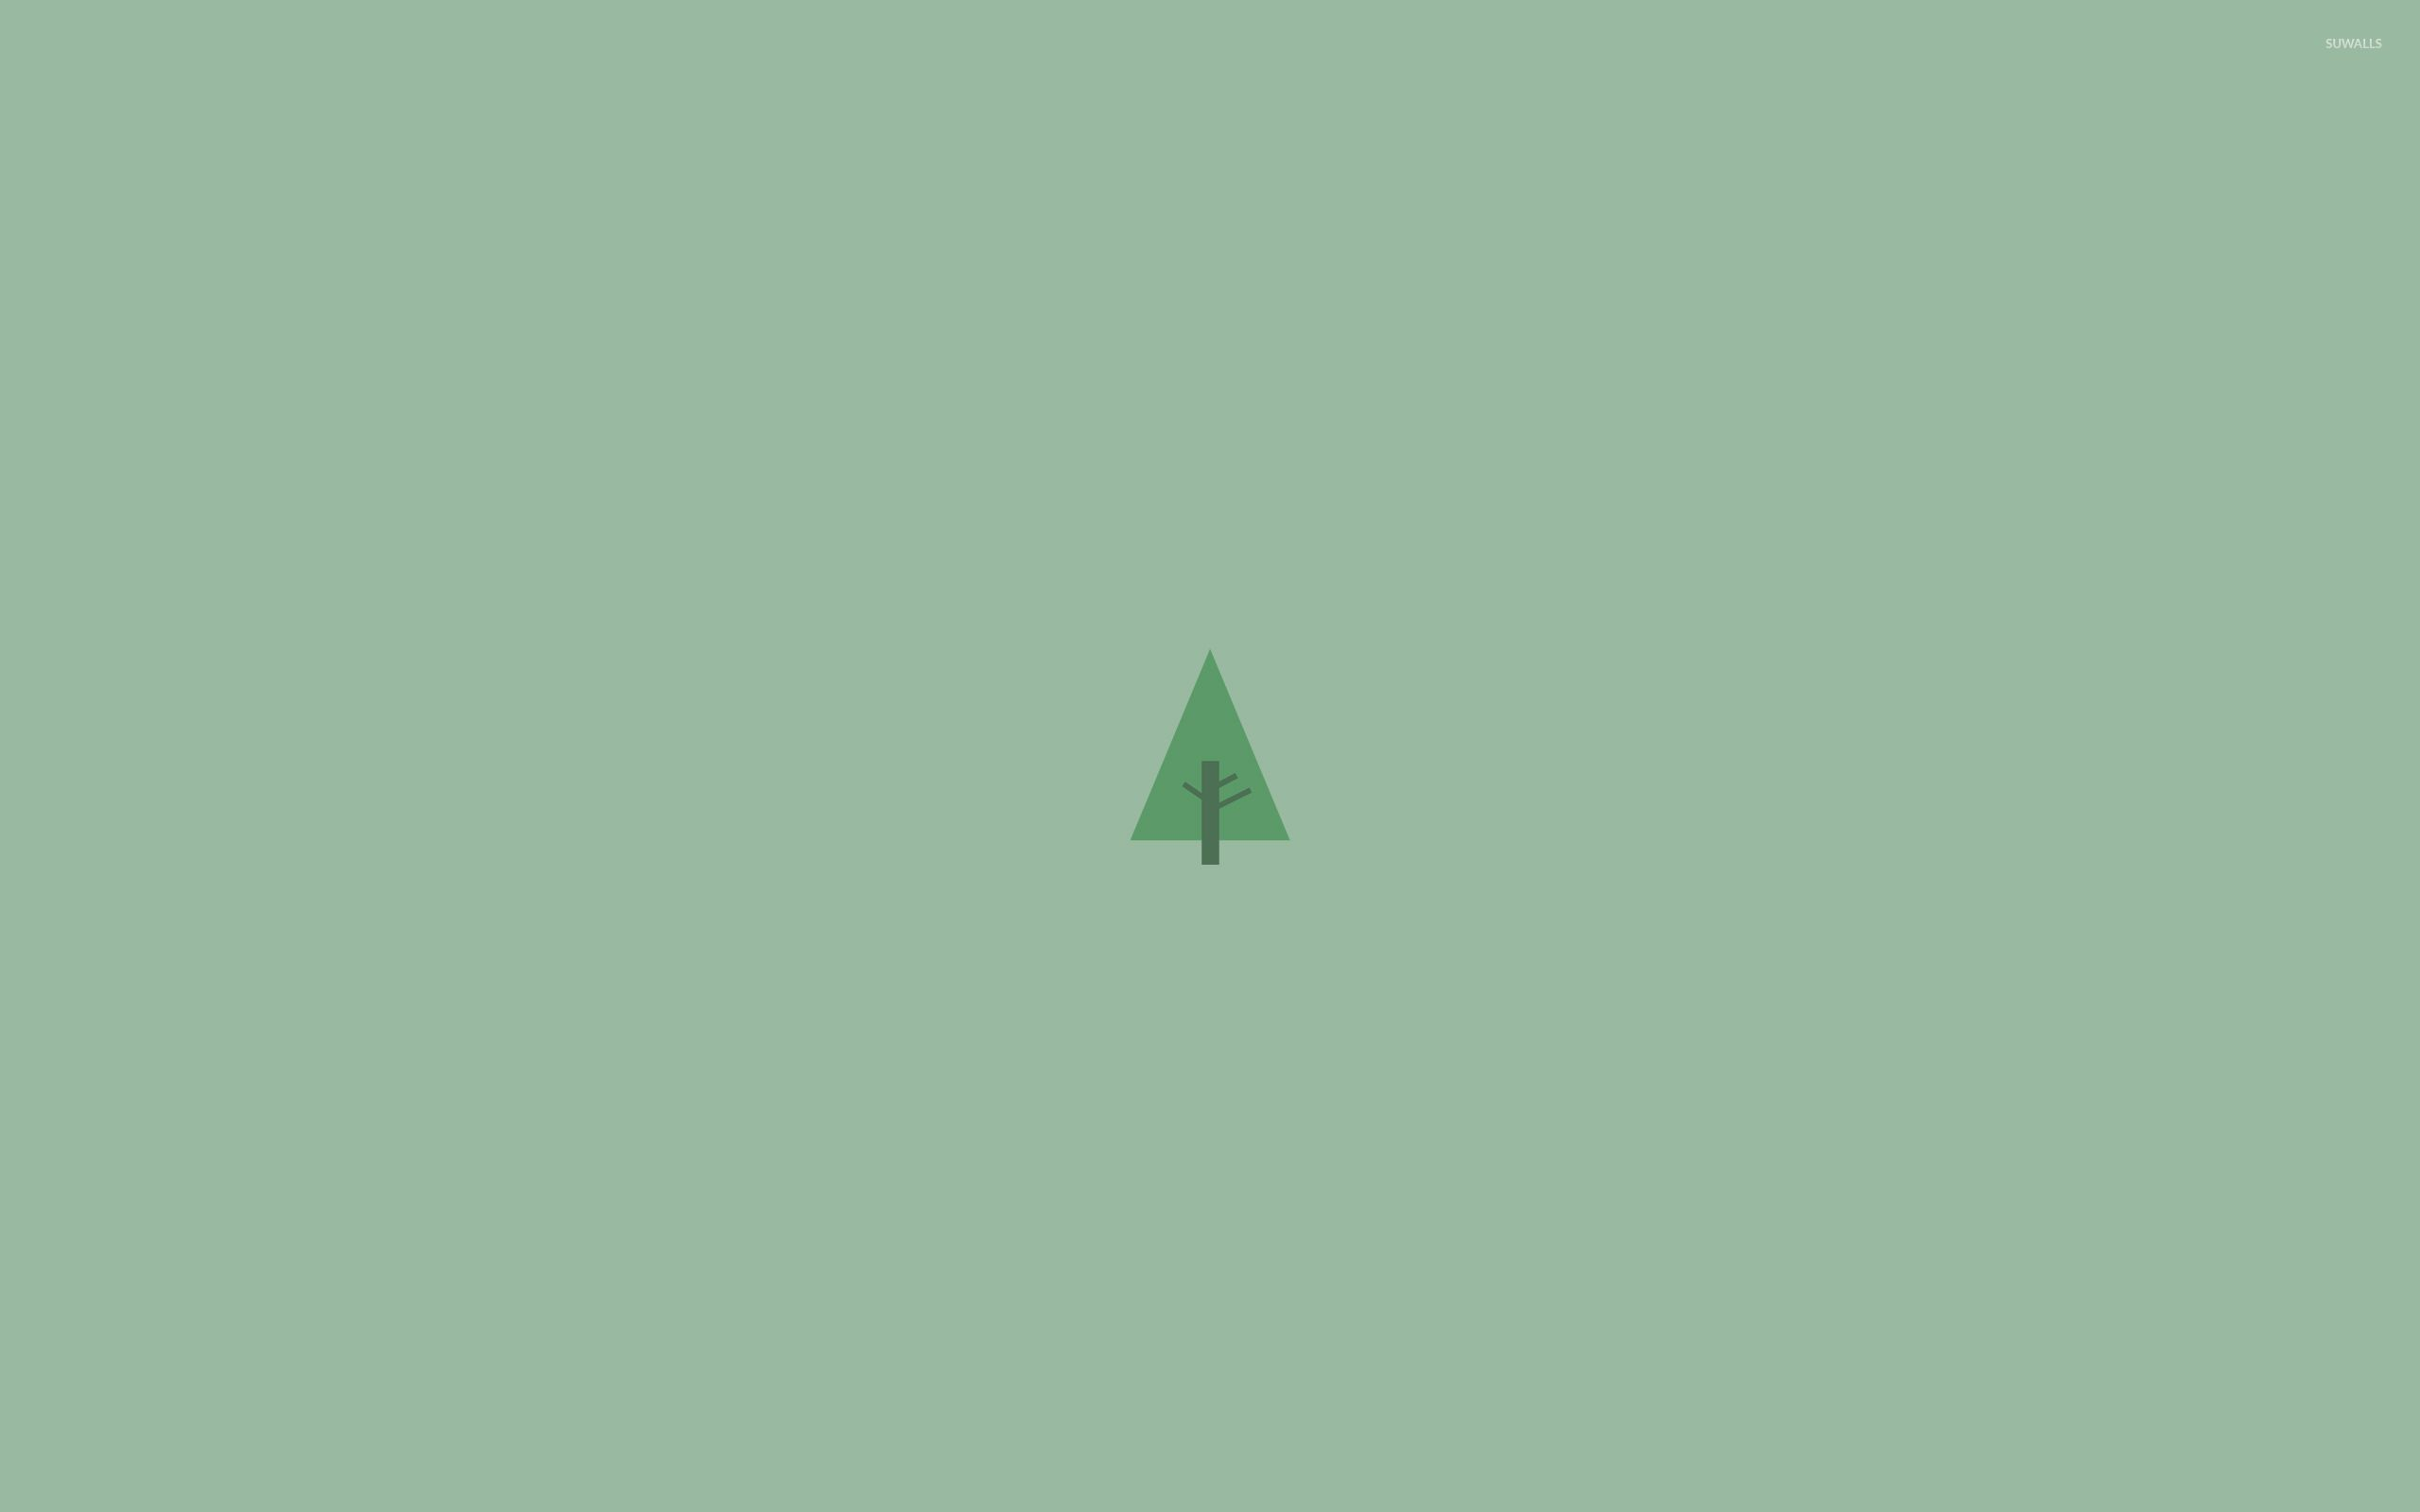 Photo Collection Minimalistic Green Tree Wallpapers